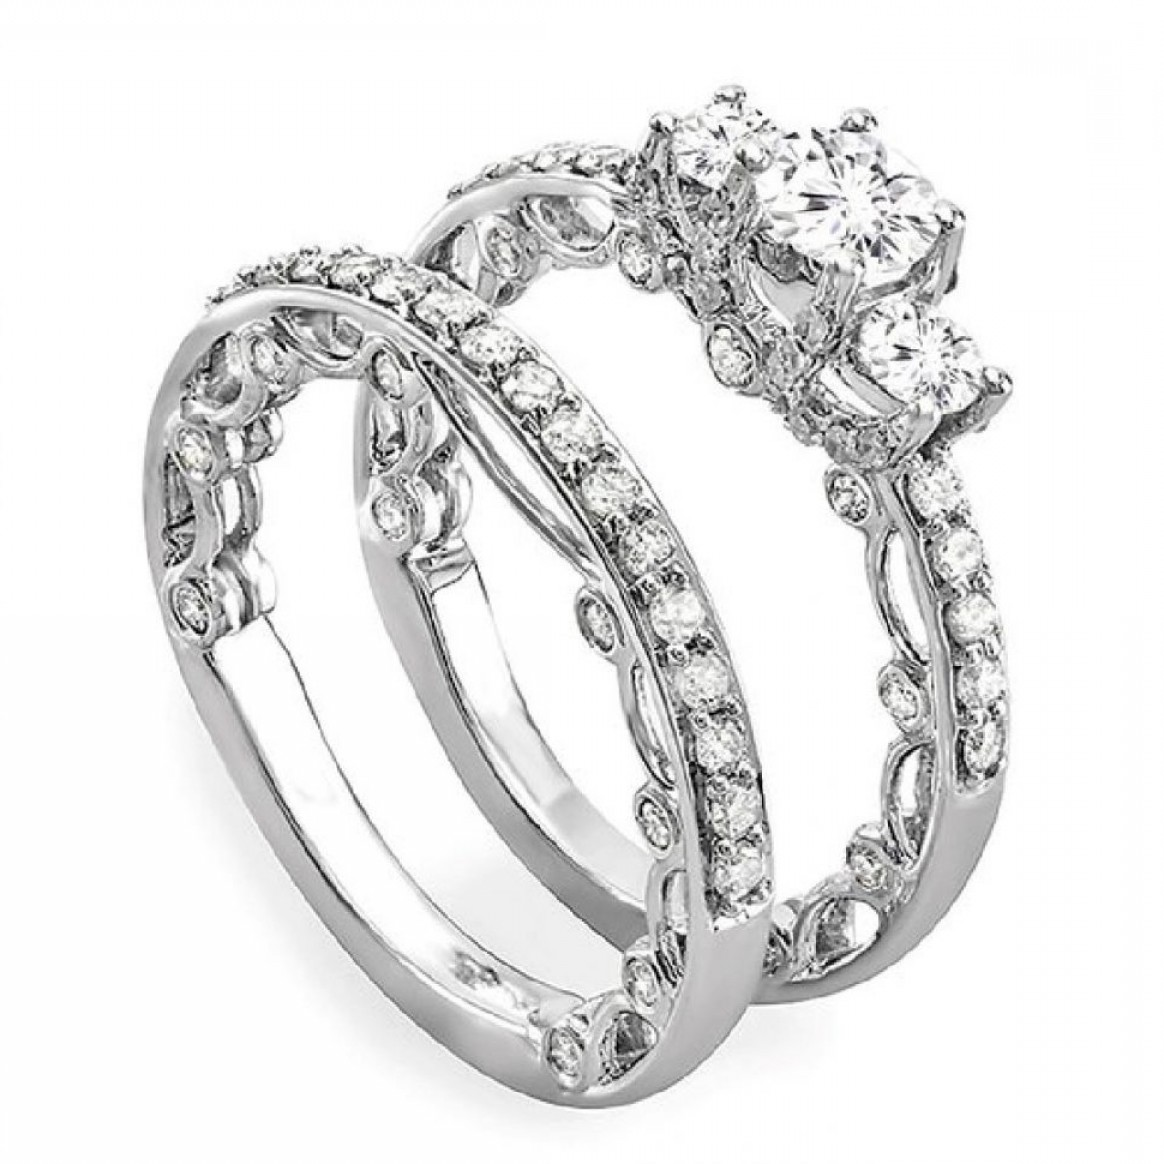 1164x1164 How To Sketch Ring How To Draw Diamond Ring Easy How To Draw